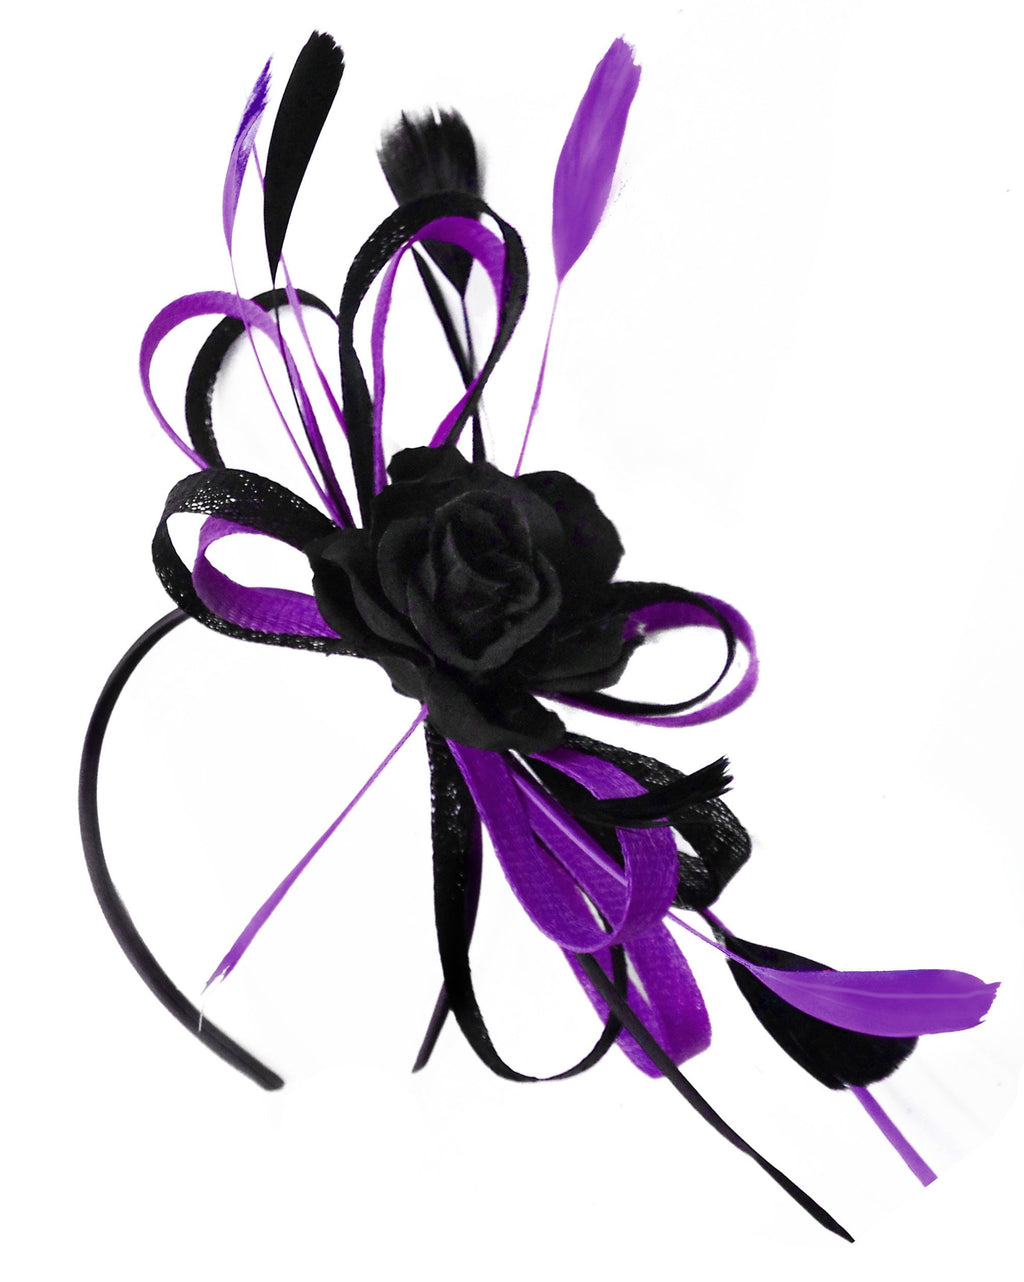 Caprilite Sinamay Rose Black and Dark Purple Fascinator on Headband Alice Band UK Wedding Ascot Races Loop